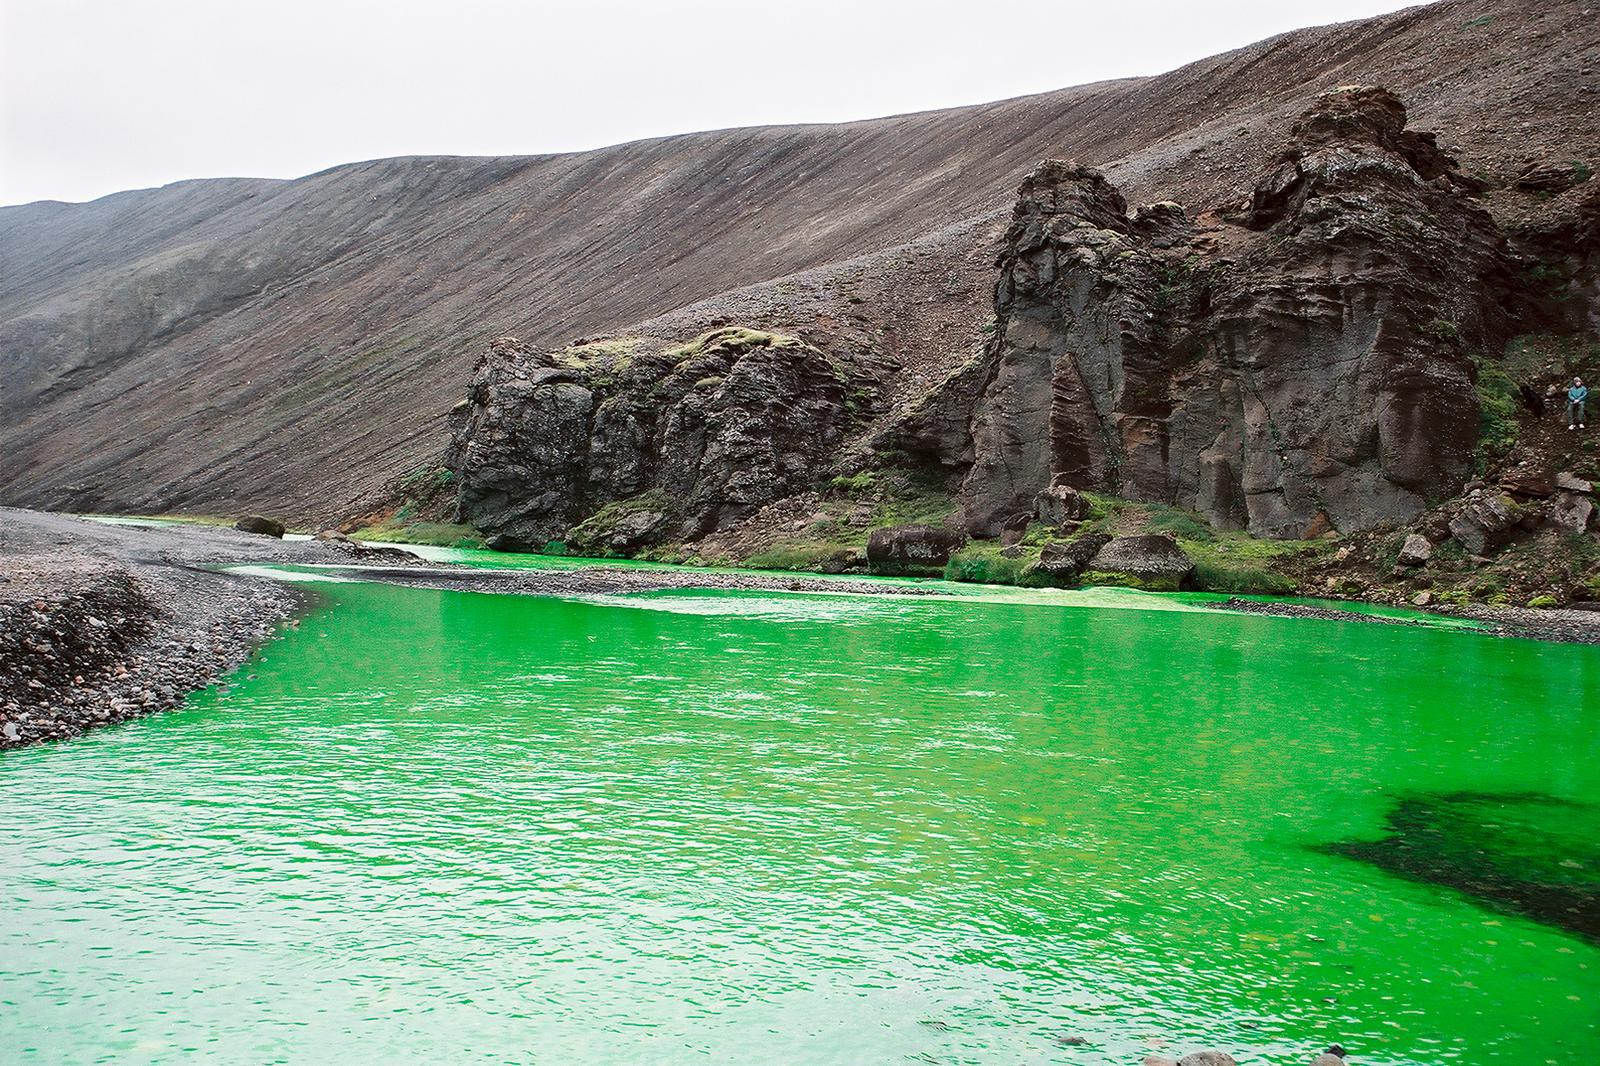 River with green dye